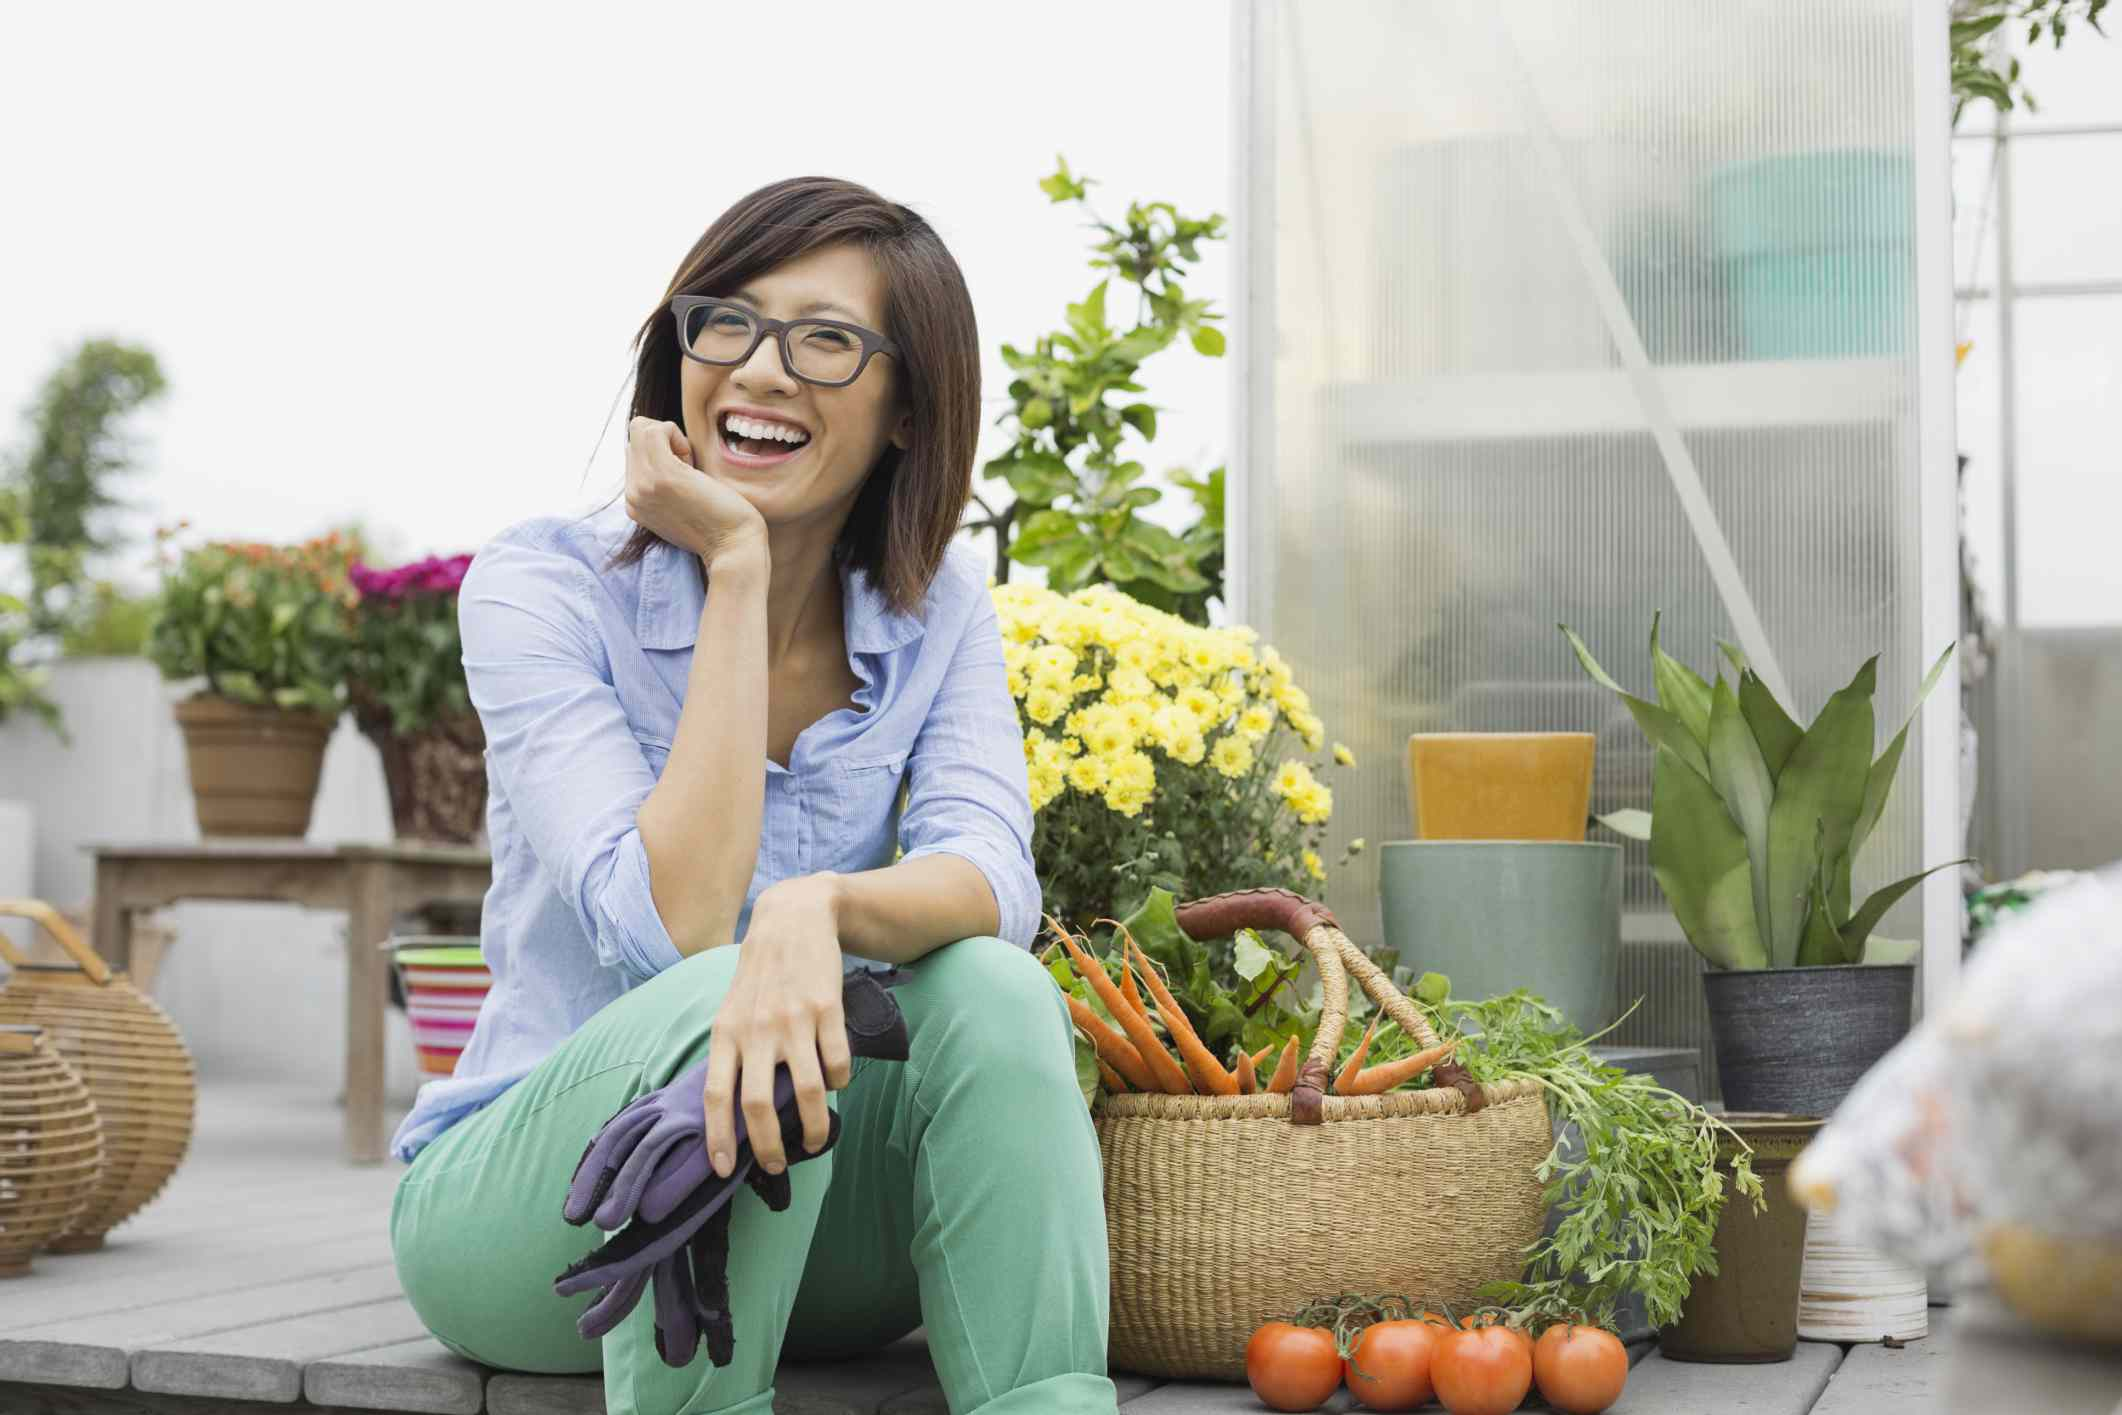 Woman sitting on a wooden deck surrounded by plants and vegetables smiling